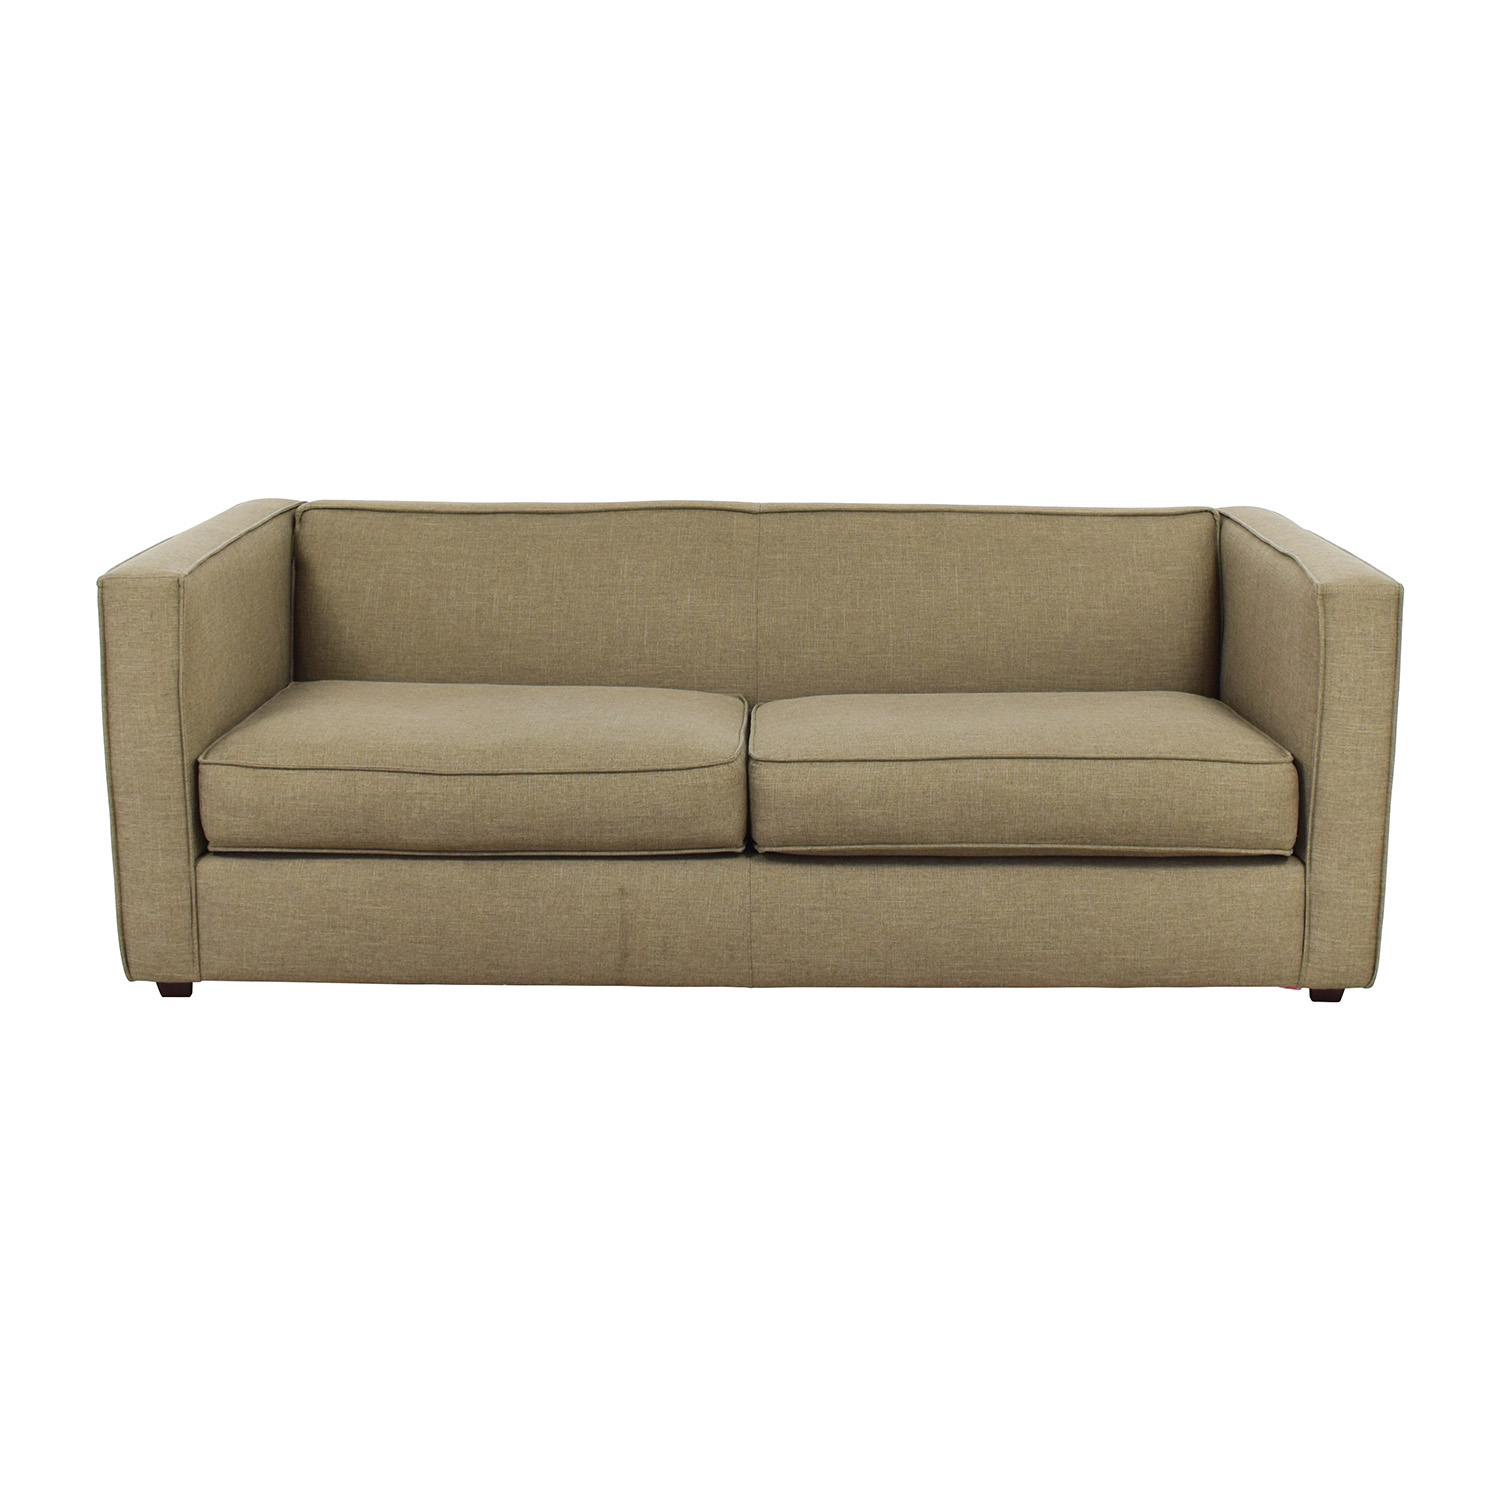 Cb2 Club Sofa In Brown Sofas